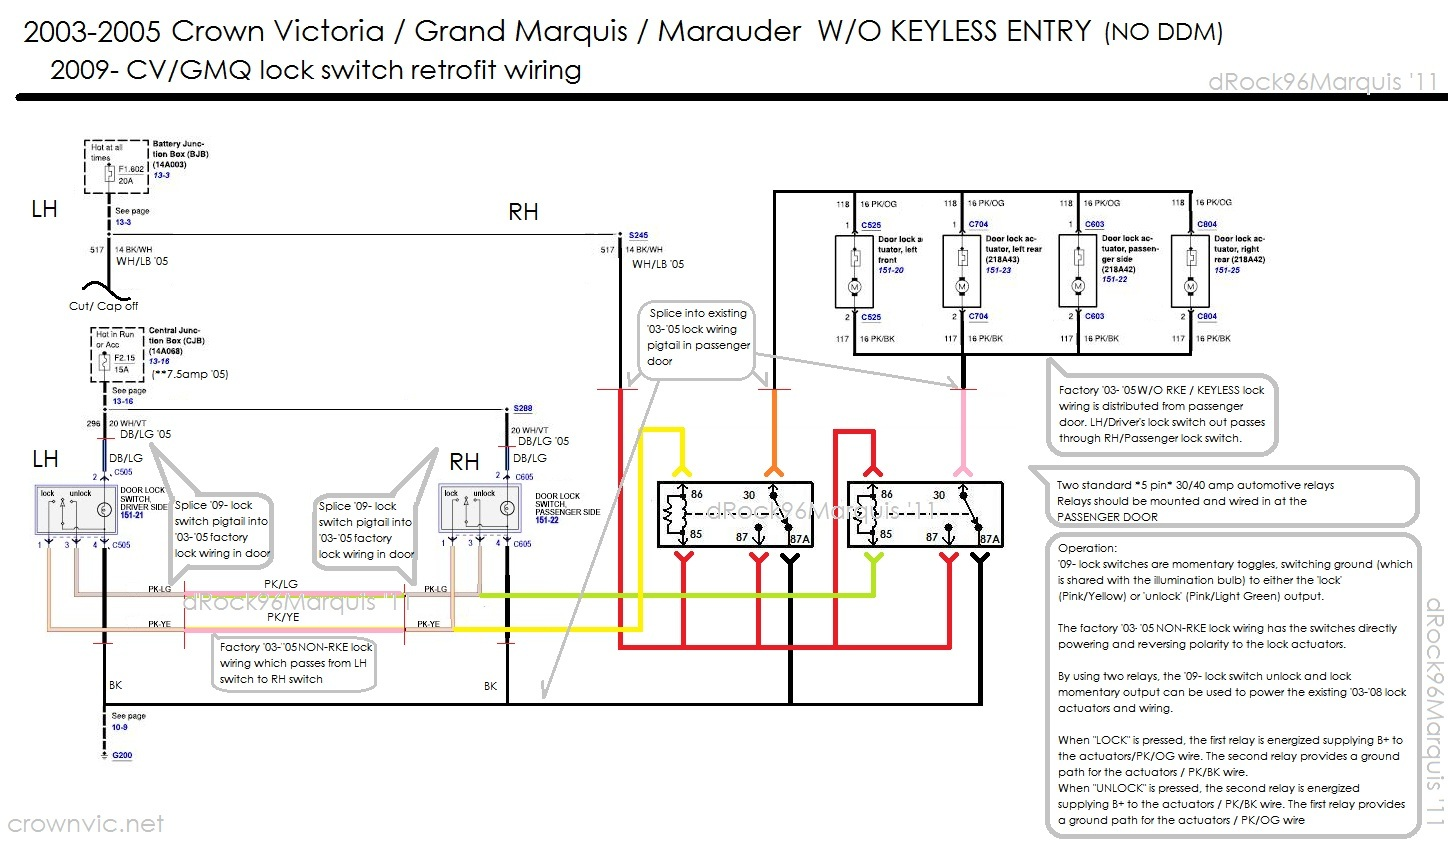 Grand Marquis 2009 Wiring Diagram : 33 Wiring Diagram Images ... on mercury 4.6 engine diagram, 2001 crown victoria wiring diagram, 2000 grand marquis engine diagram, nissan 370z wiring diagram, chevy metro wiring diagram, saturn aura wiring diagram, mitsubishi starion wiring diagram, 1965 mustang color wiring diagram, mercury zephyr wiring diagram, mercury grand marquis fuse box diagram, chevy silverado 1500 wiring diagram, 2001 mercury grand marquis engine diagram, chrysler aspen wiring diagram, mercury sable wiring-diagram, mercury grand marquis serpentine belt diagram, mercury milan wiring diagram, 1997 grand marquis radio wiring diagram, mercury wiring harness diagram, saturn astra wiring diagram, ford aerostar wiring diagram,